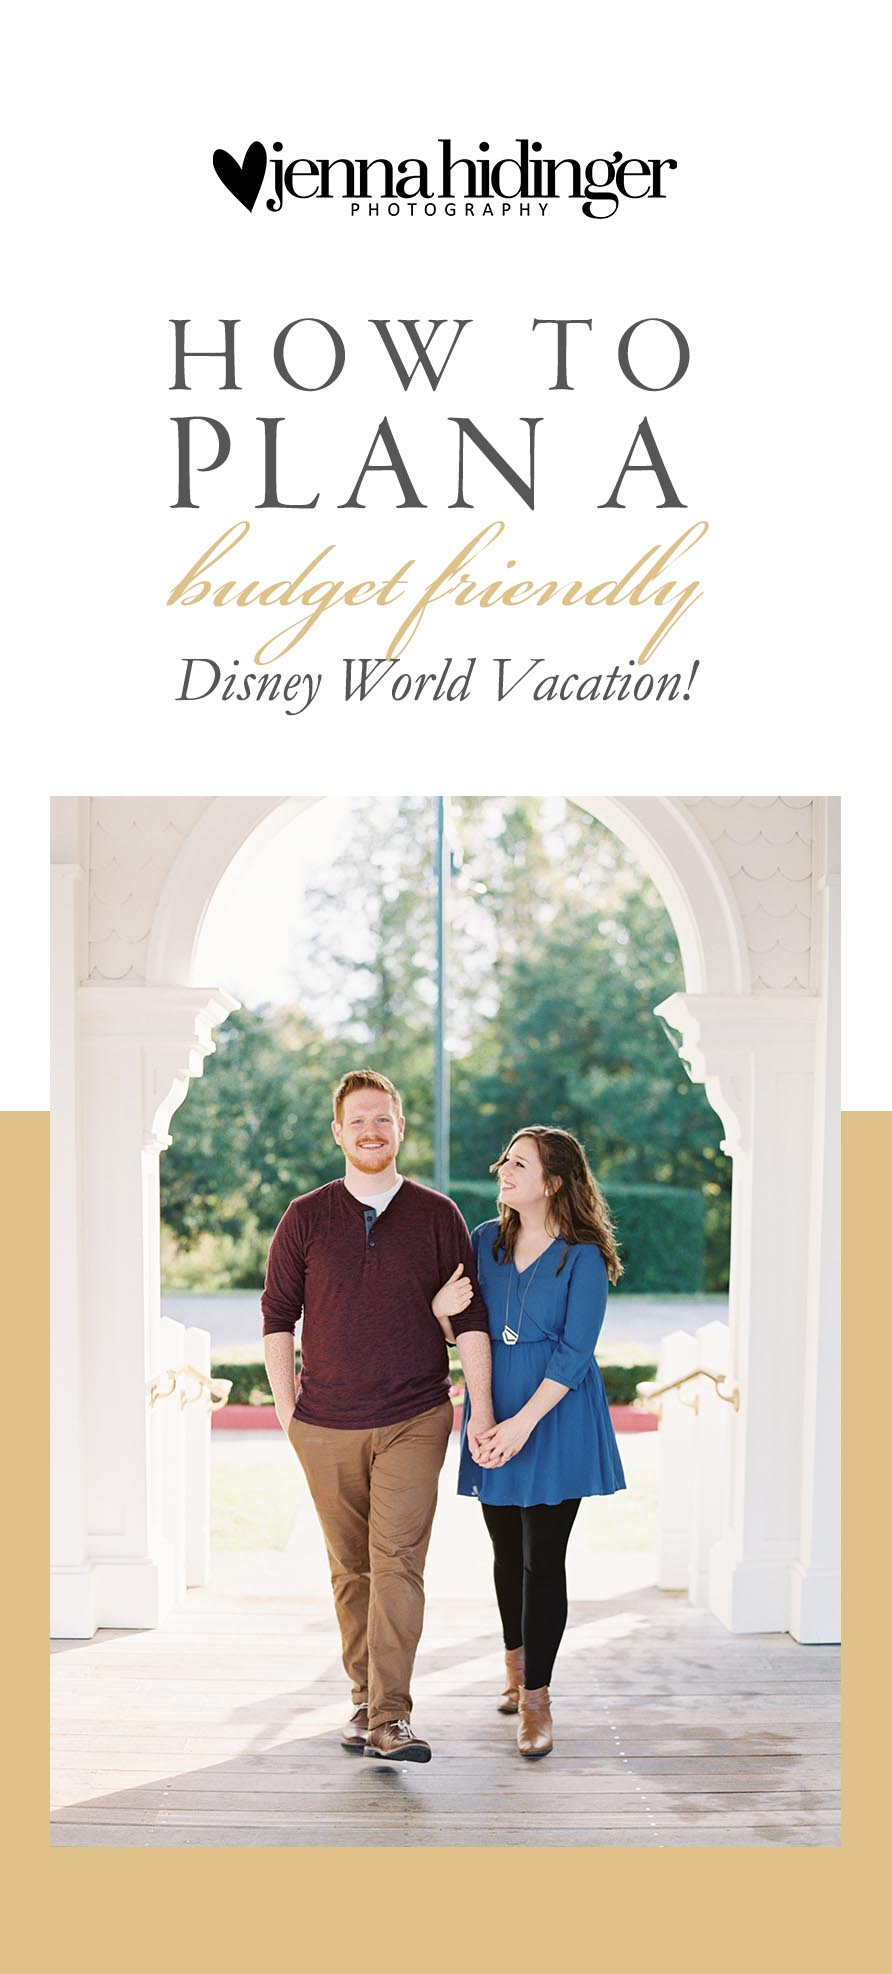 How to Plan a Budget Friendly Disney Vaca.jpg